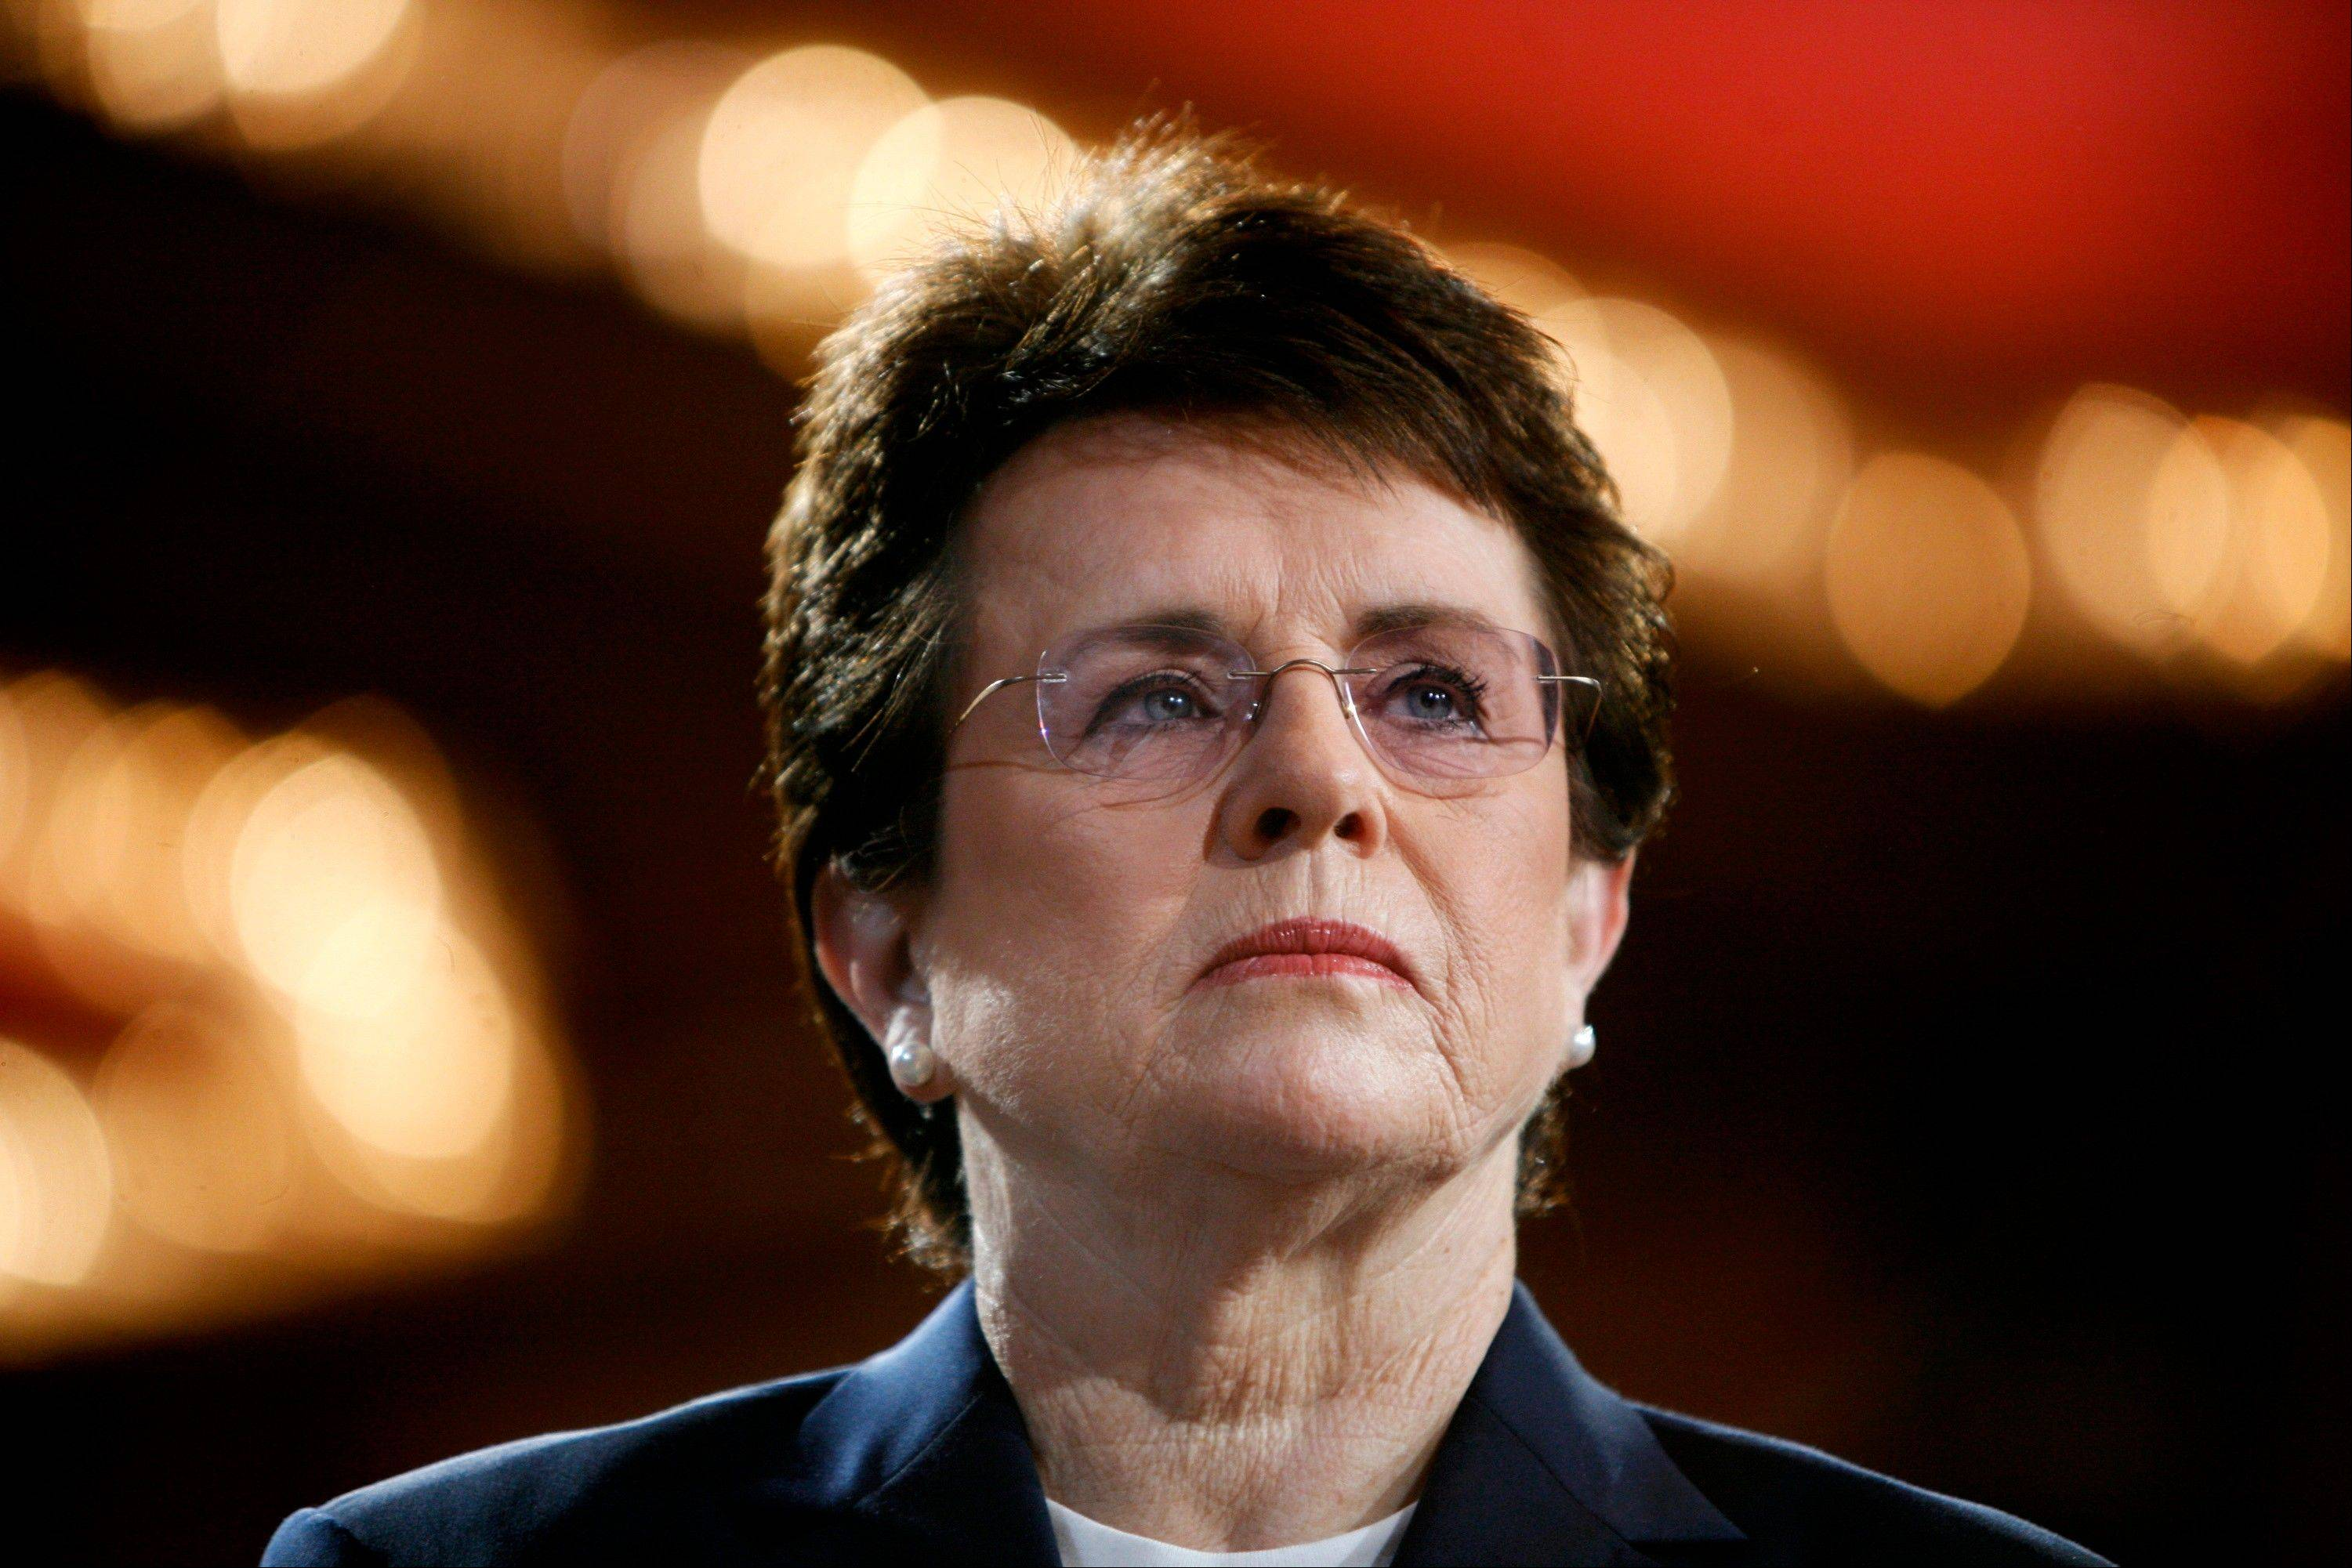 FILE - In this June 4, 2007, file photo, tennis champion Billie Jean King is introduced during a town hall conversation hosted by the group Women for Hillary in New York. King will not attend Friday's opening ceremony of the Sochi Olympics in Russia because her mother is ill. King, chosen in December to help lead the U.S. delegation to the Sochi Games, has been outspoken in her opposition to Russia's anti-gay law and had planned to attend ice hockey and figure skating events and meet U.S. athletes during her three-day visit to the games.